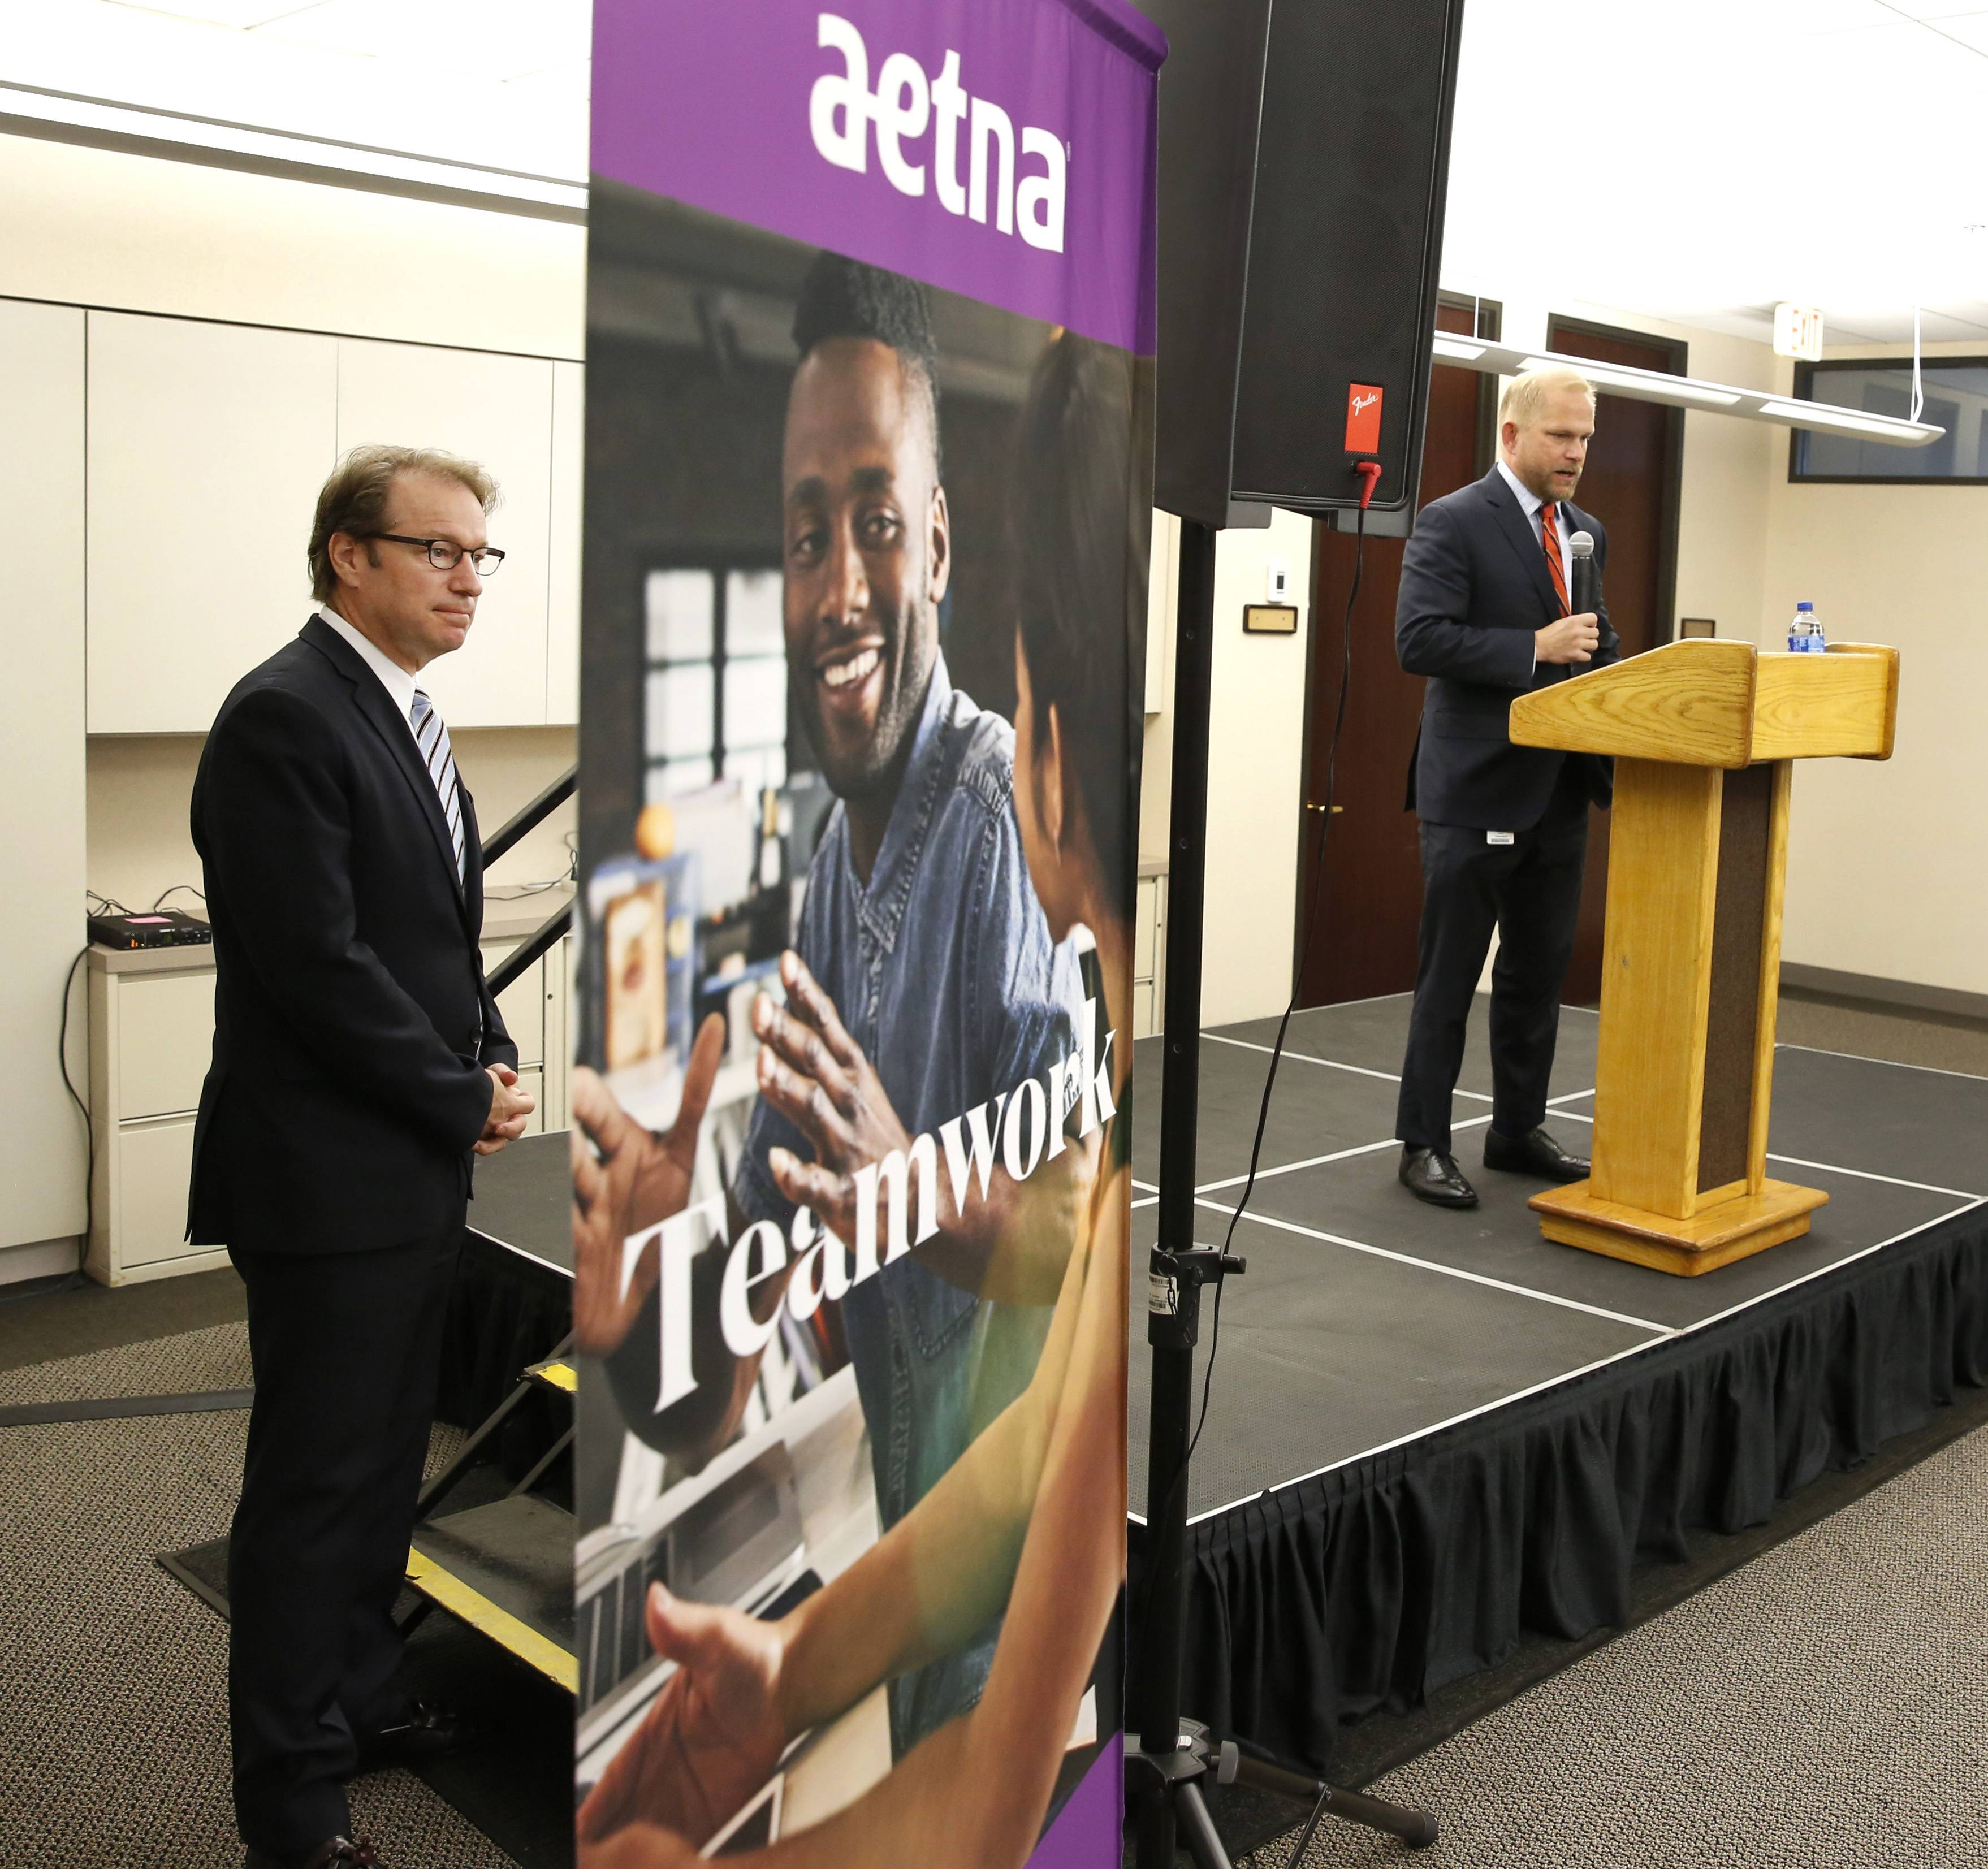 U.S. Rep. Peter Roskam waits for his introduction to speak to employees of the health insurance company Aetna in Downers Grove.